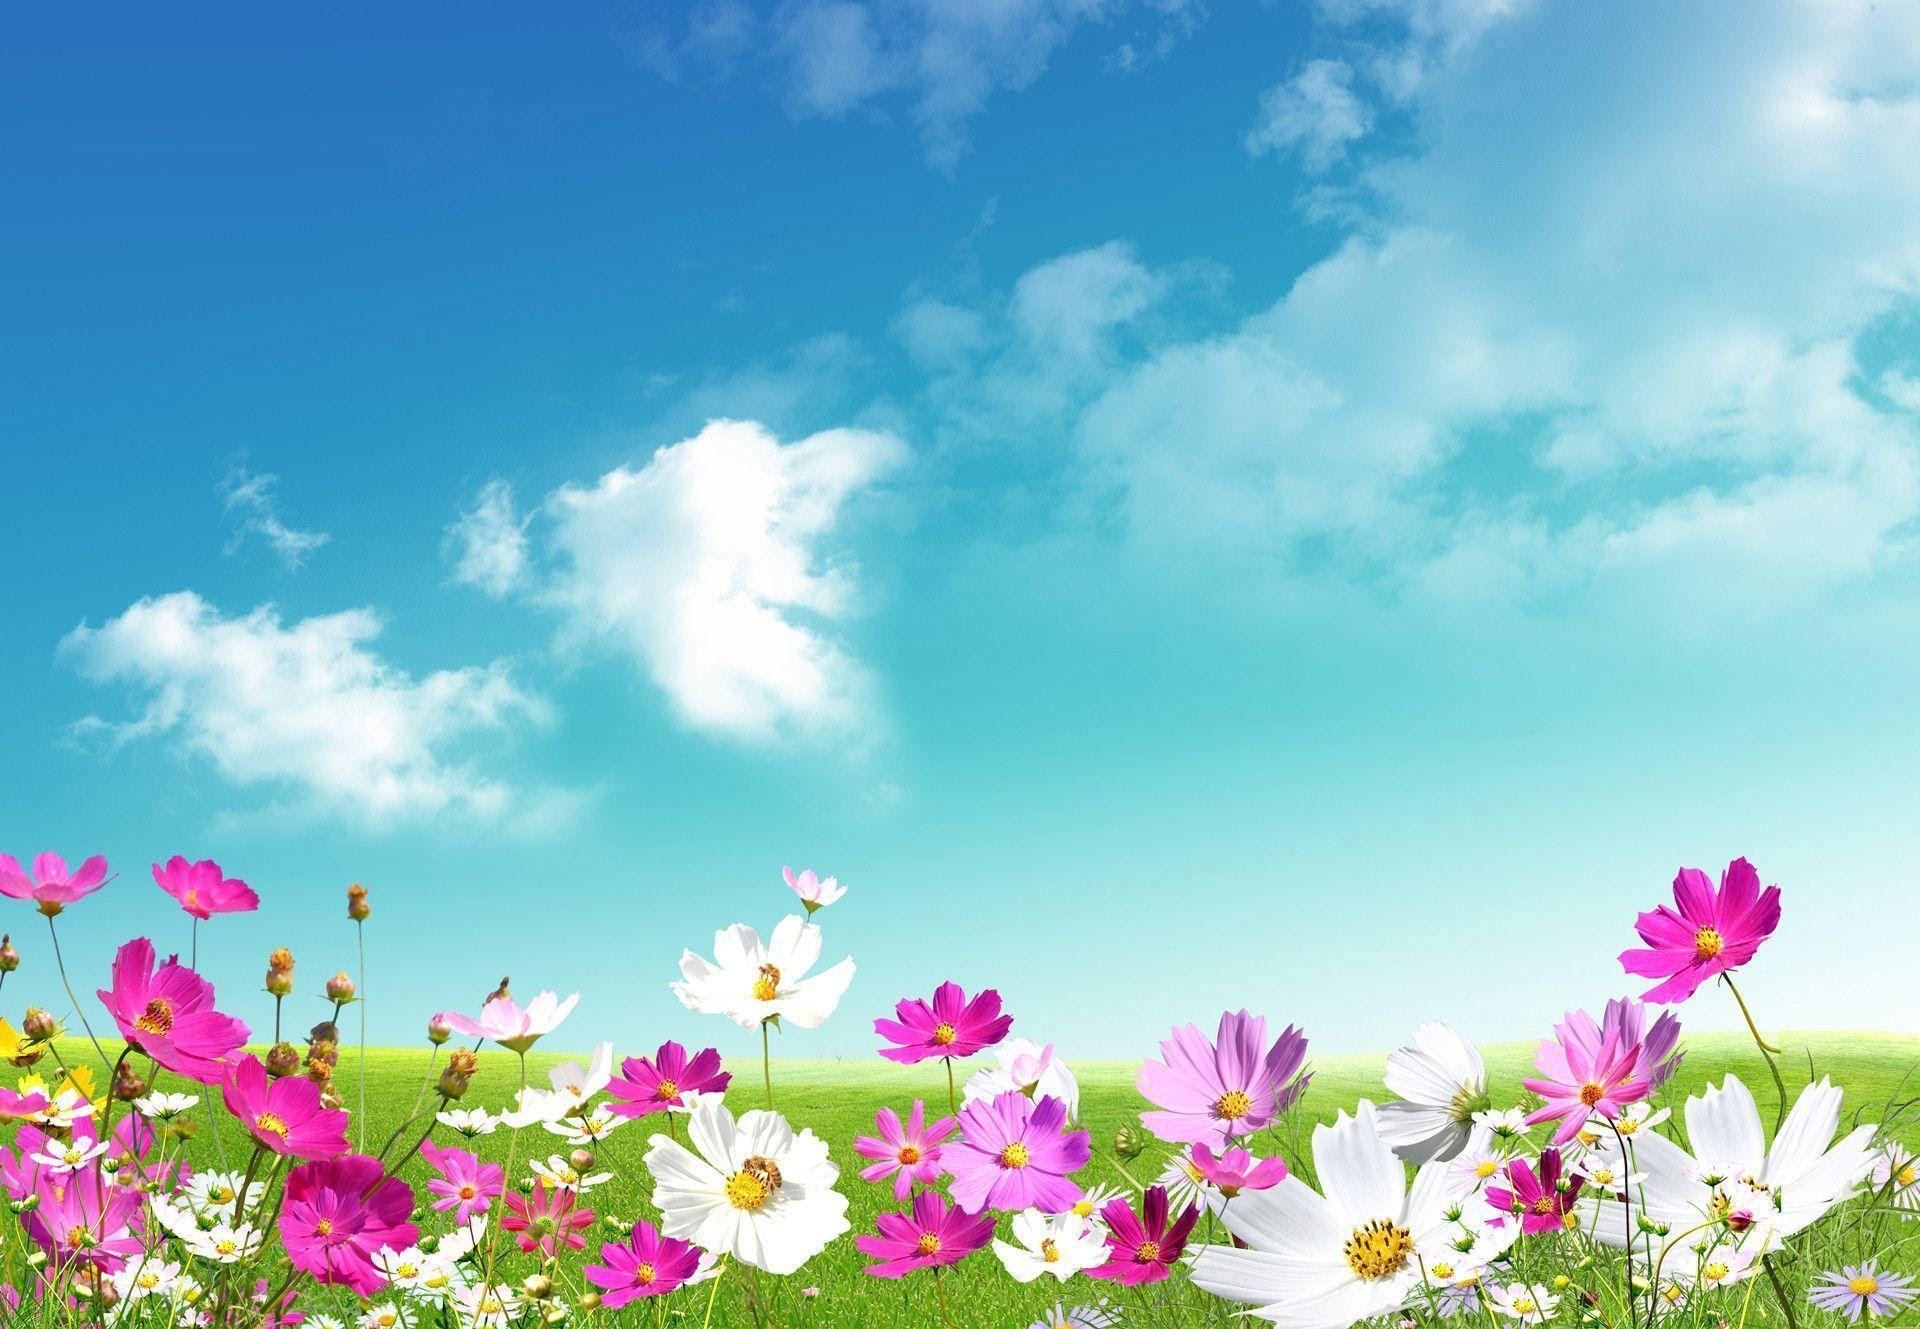 Free Spring Desktop Wallpaper Backgrounds  Wallpaper Cave